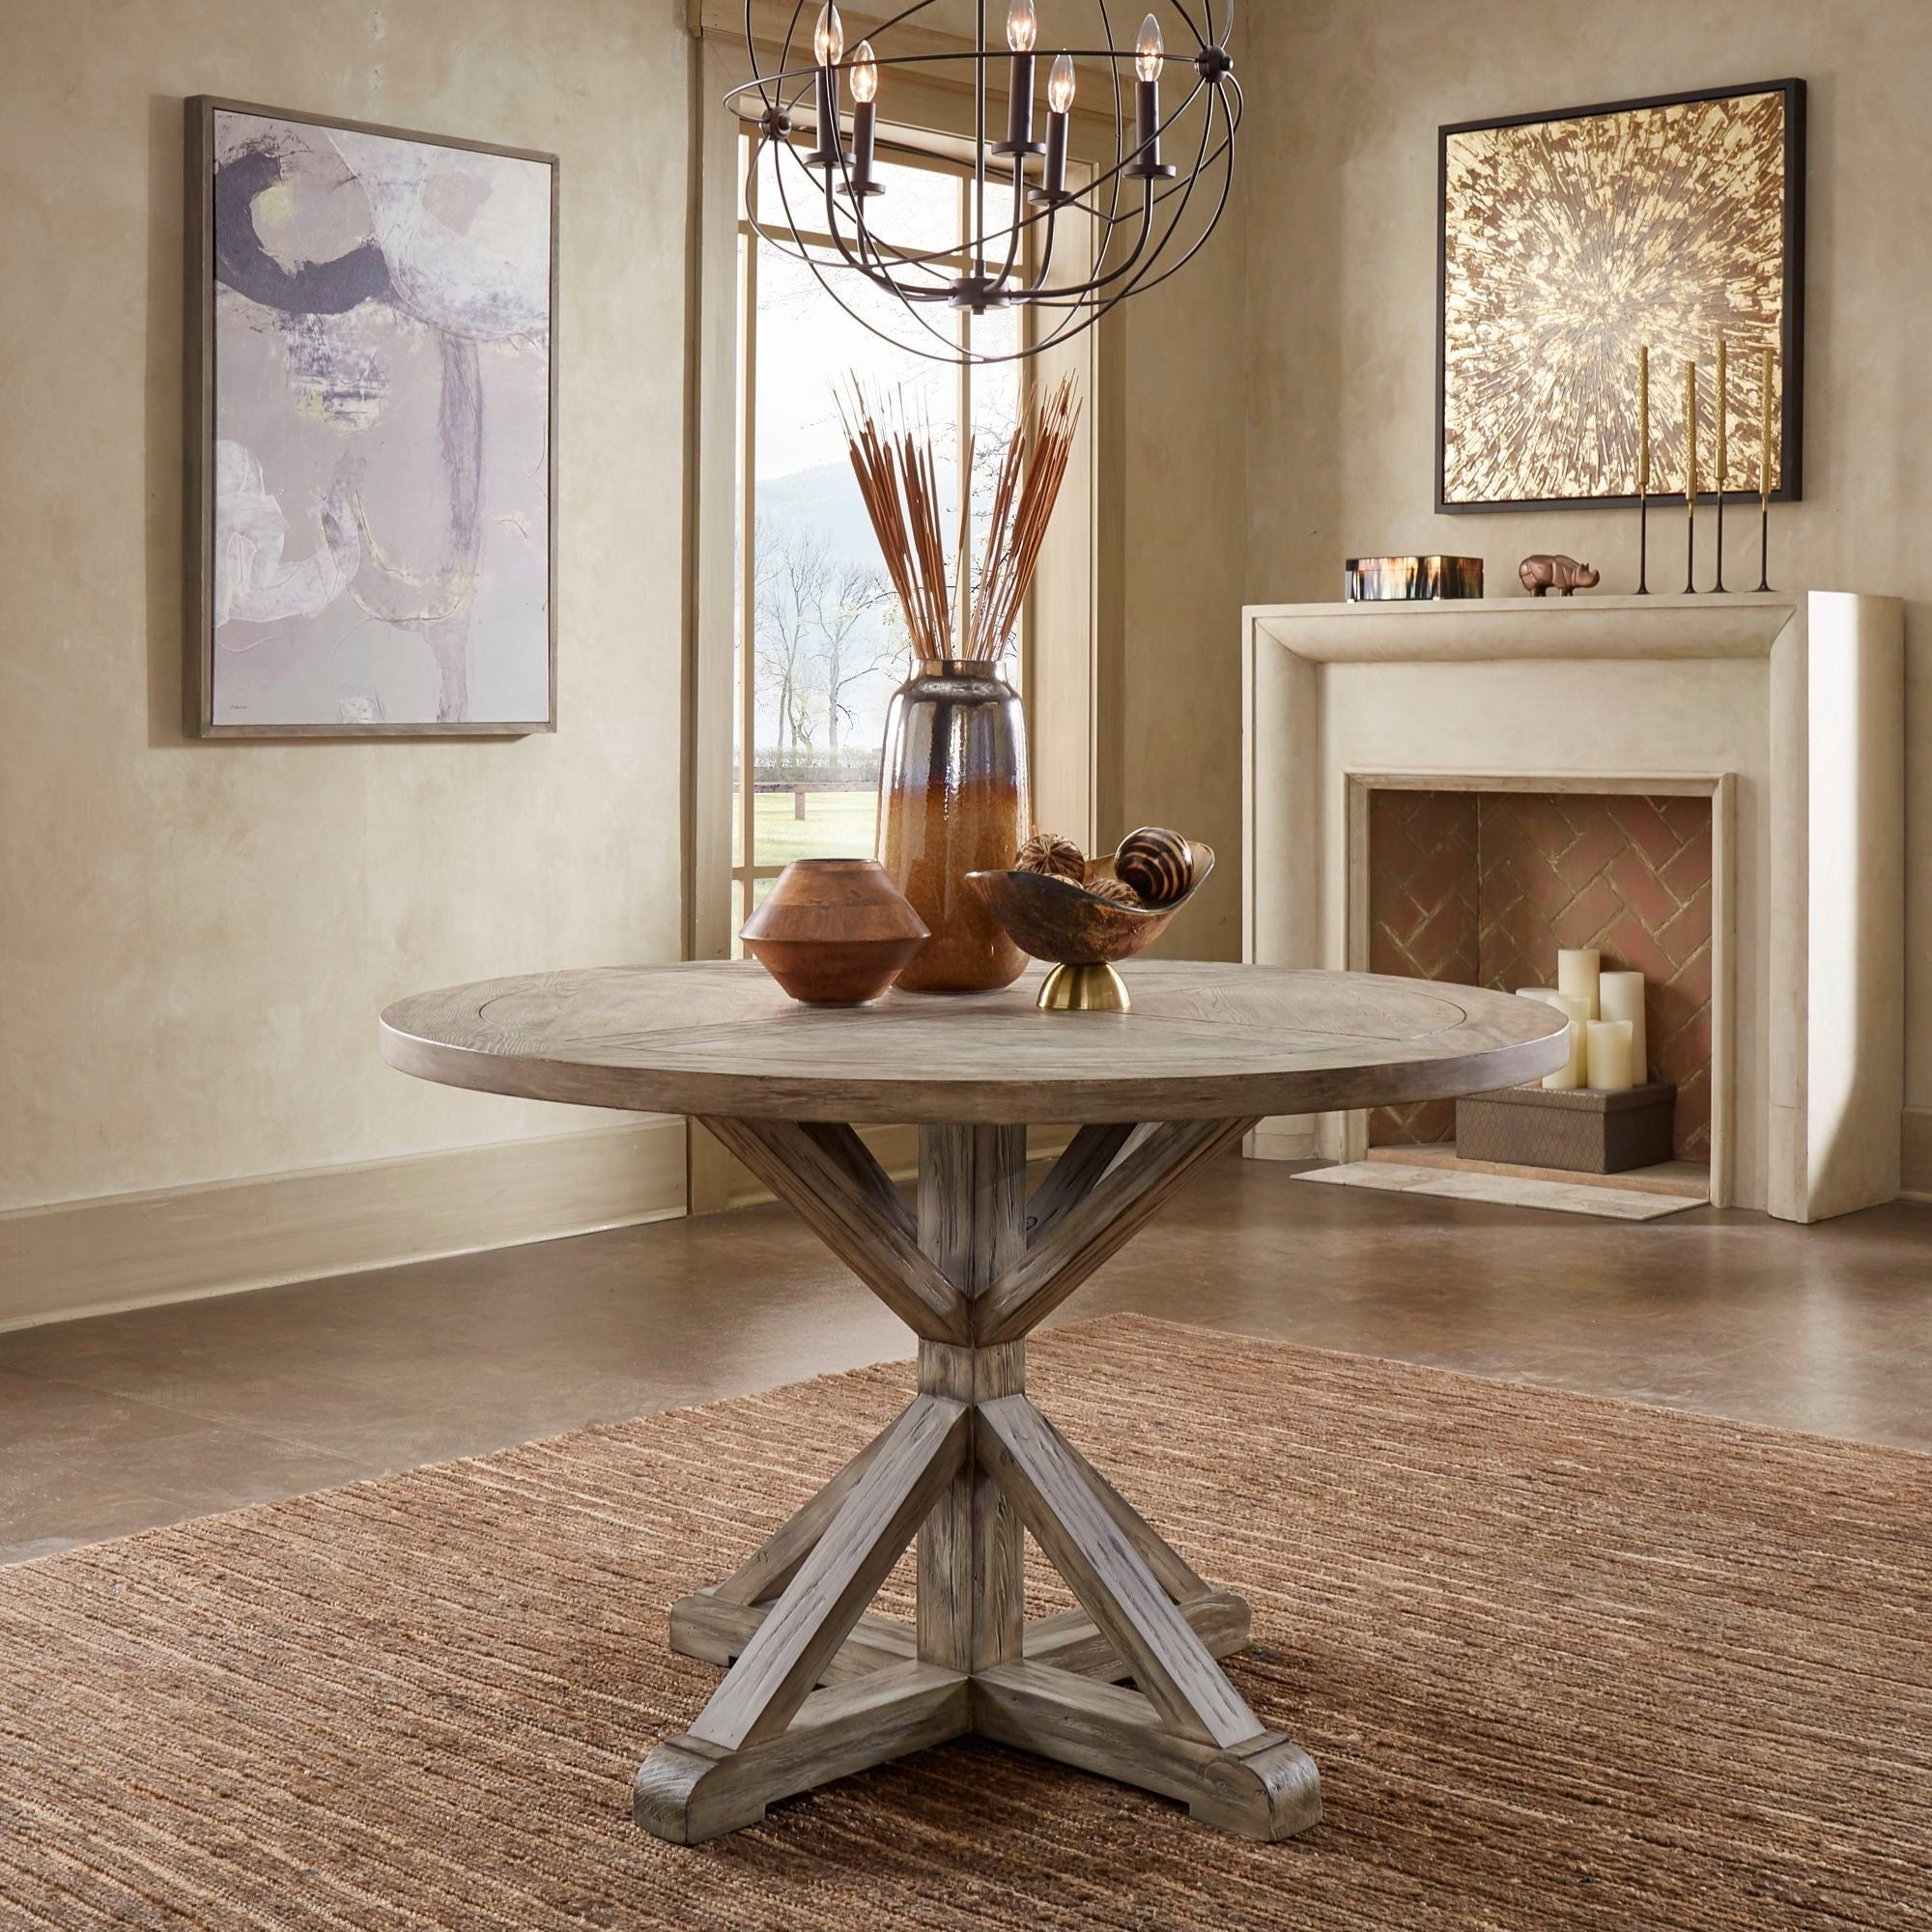 Benchwright Antique Grey Oak Round Dining Tableinspire Q Artisan With Regard To Most Popular Blackened Oak Benchwright Dining Tables (Image 6 of 25)